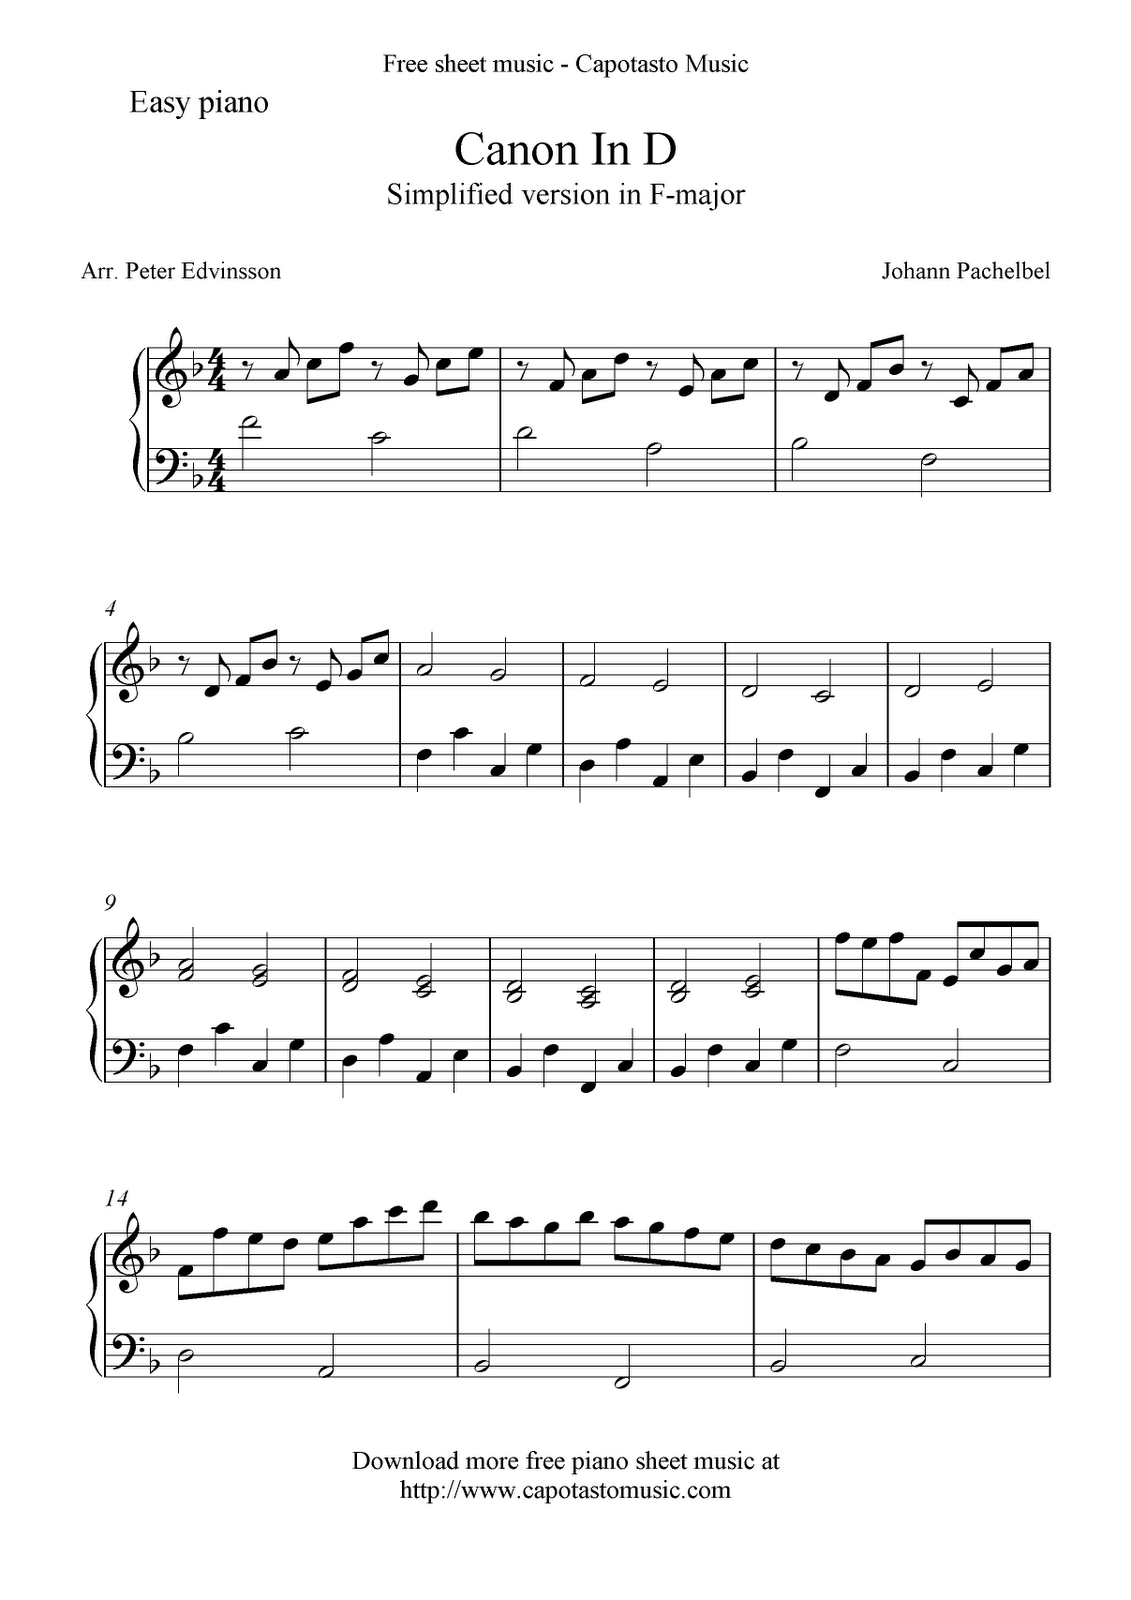 Canon in d free easy piano sheet music not complete wish i canon in d free easy piano sheet music not complete hexwebz Choice Image